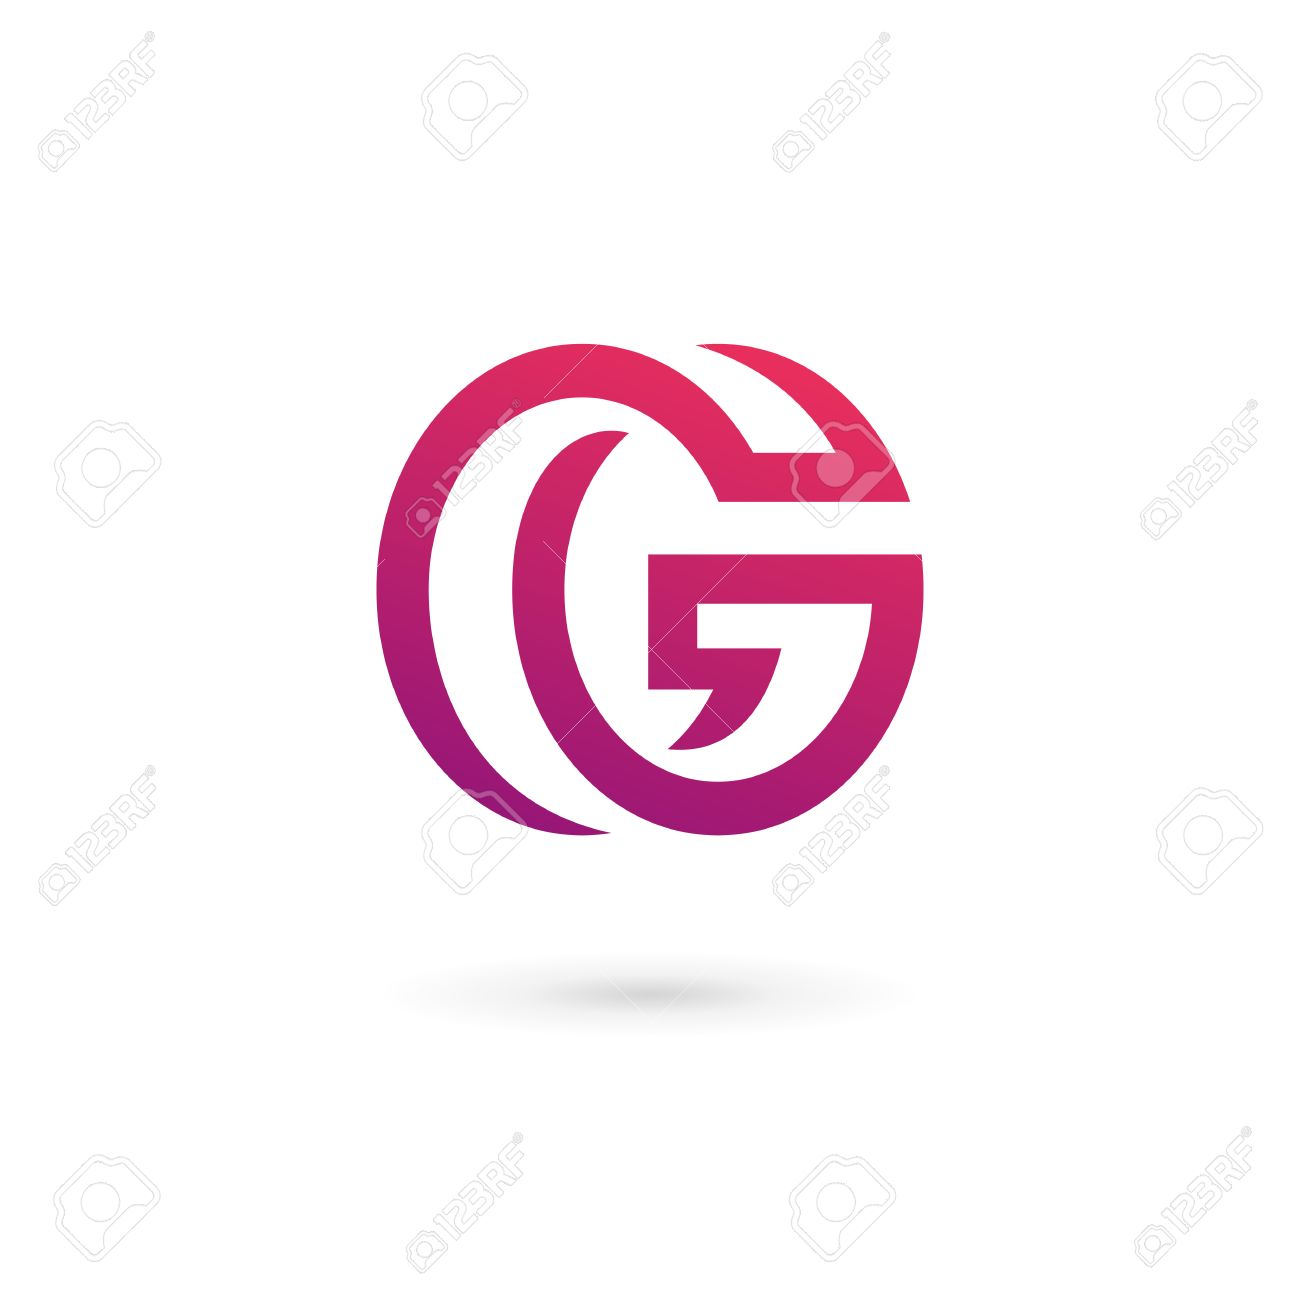 Letter G Stock Photos. Royalty Free Letter G Images